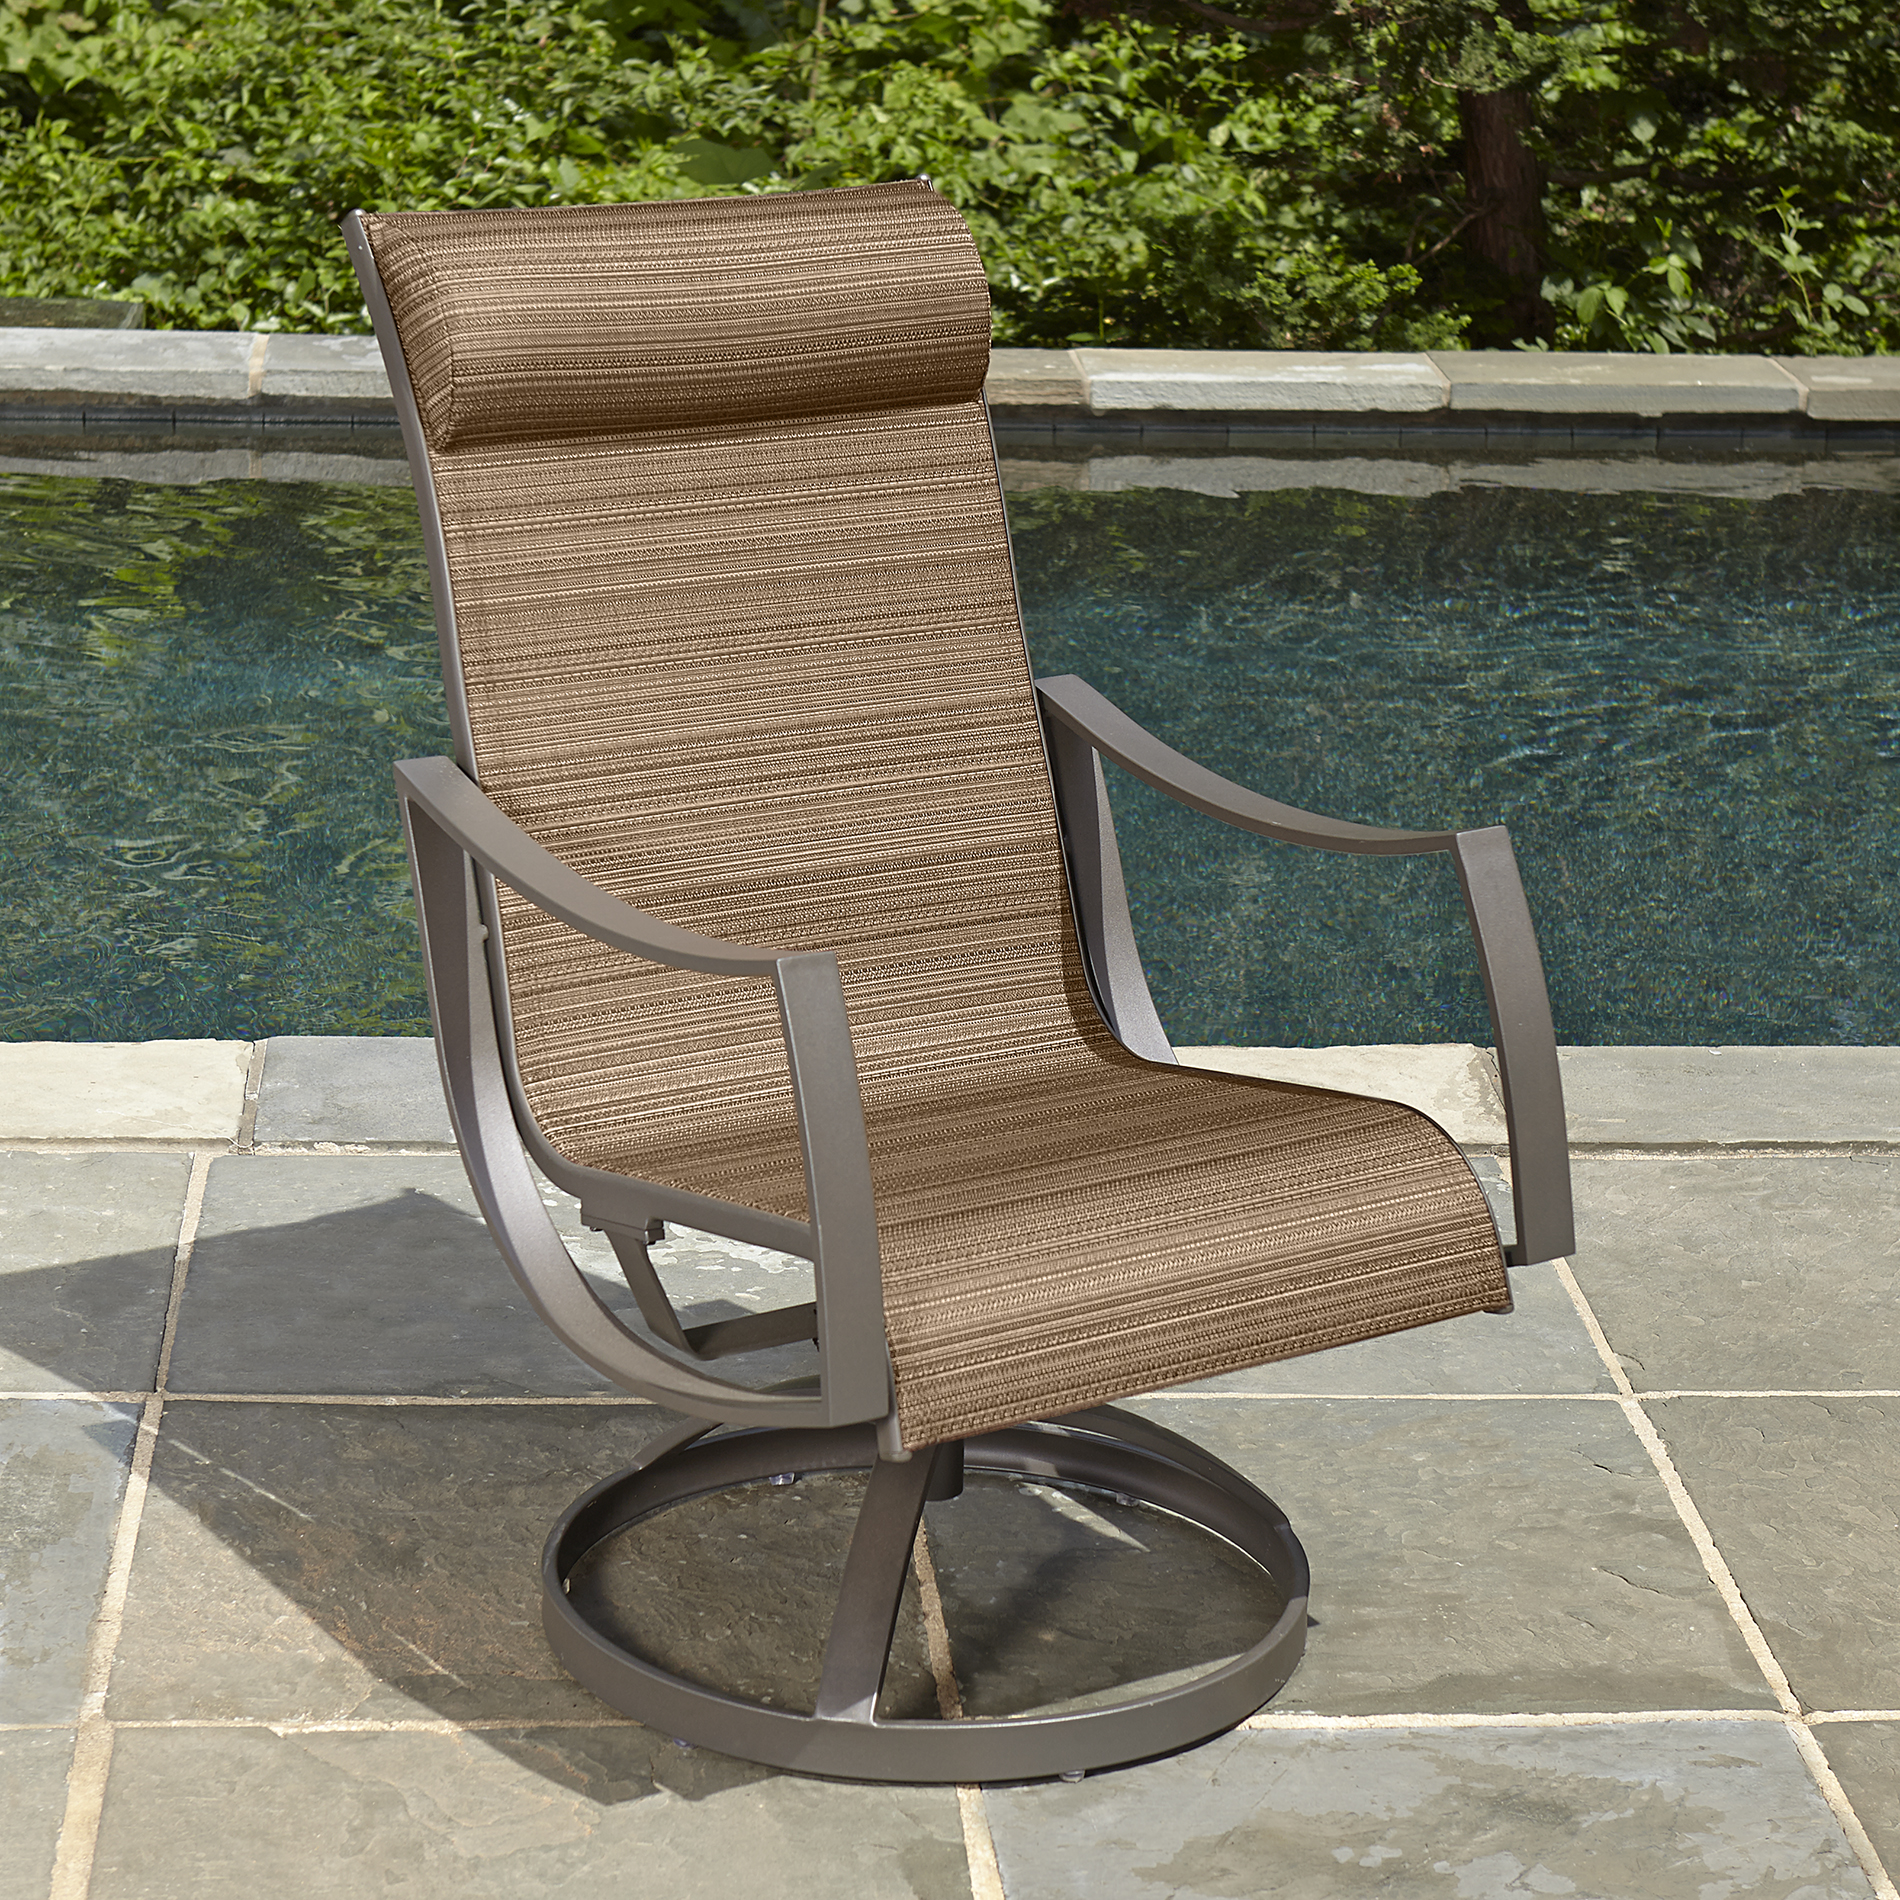 sling motion patio chairs high bar stool ty pennington style palmetto 1pc dining chair